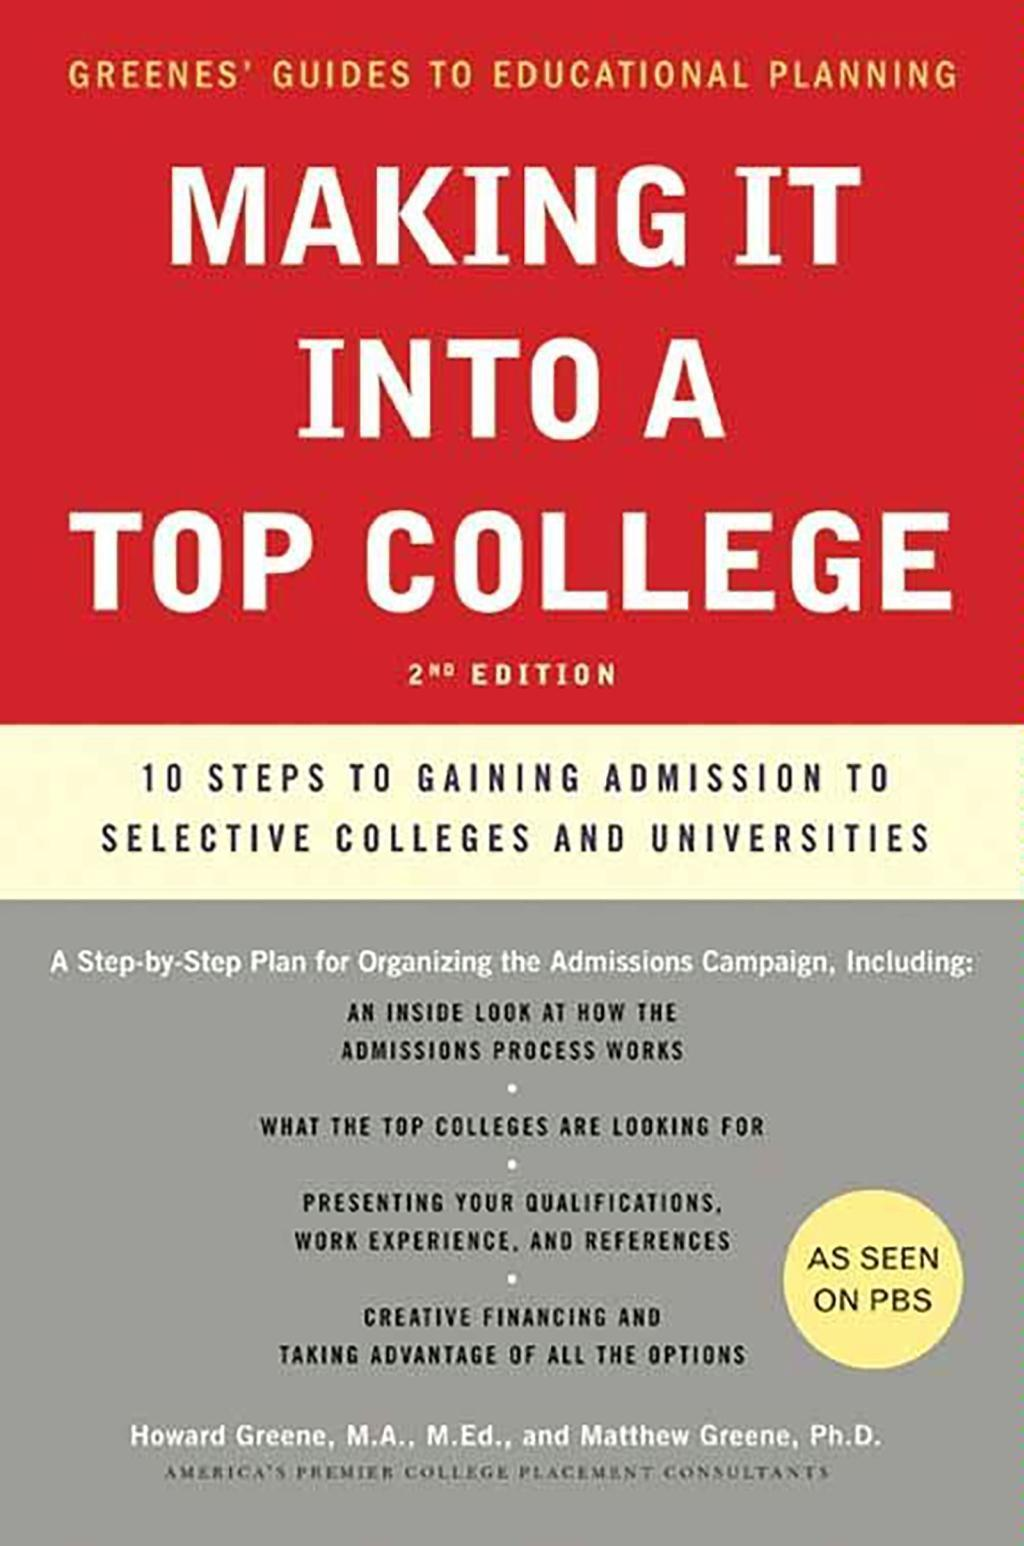 Making It into a Top College